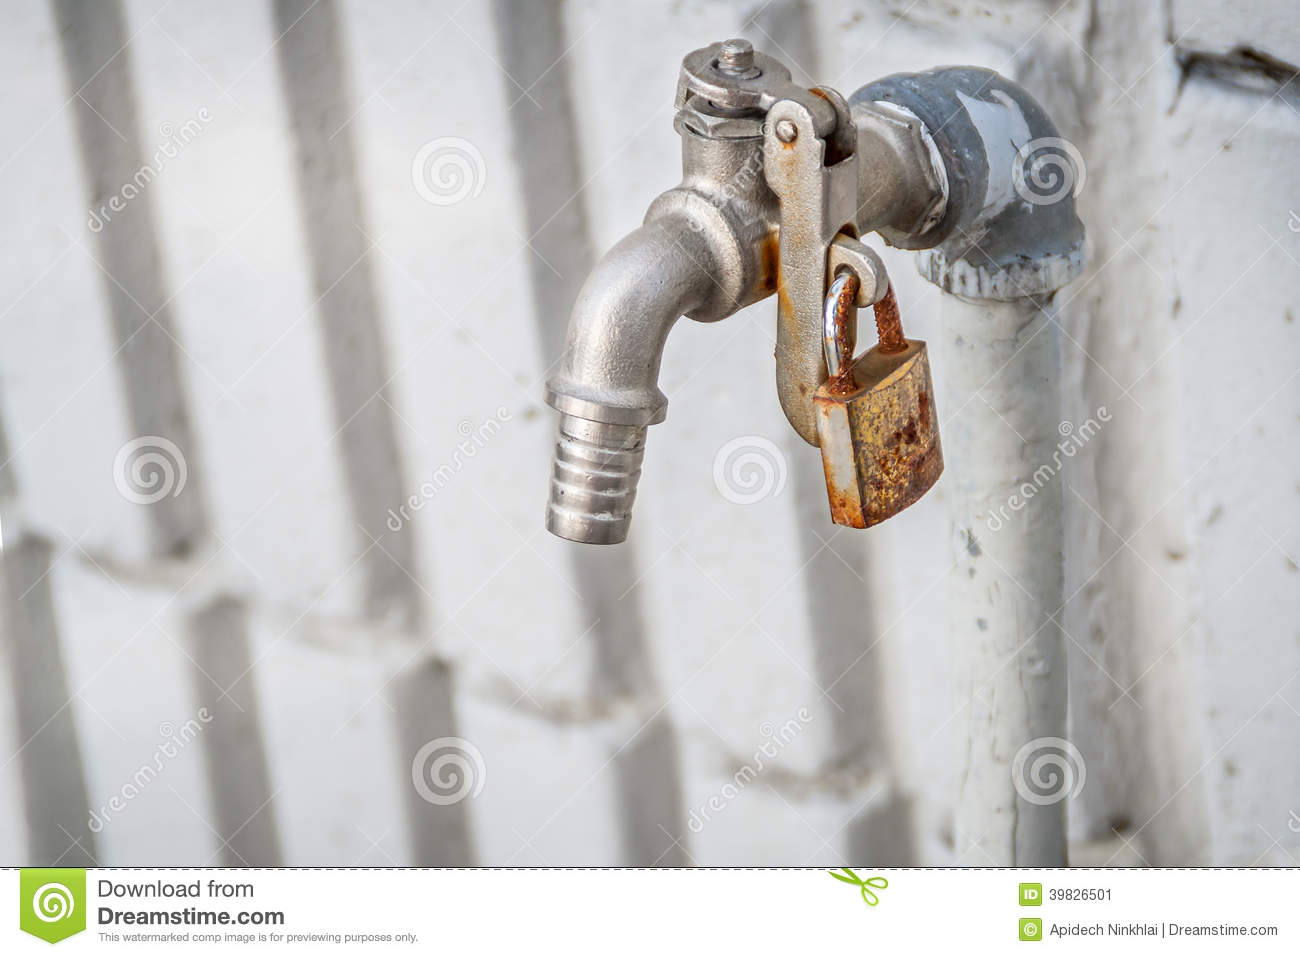 Faucet with key lock stock image. Image of conceptual - 39826501